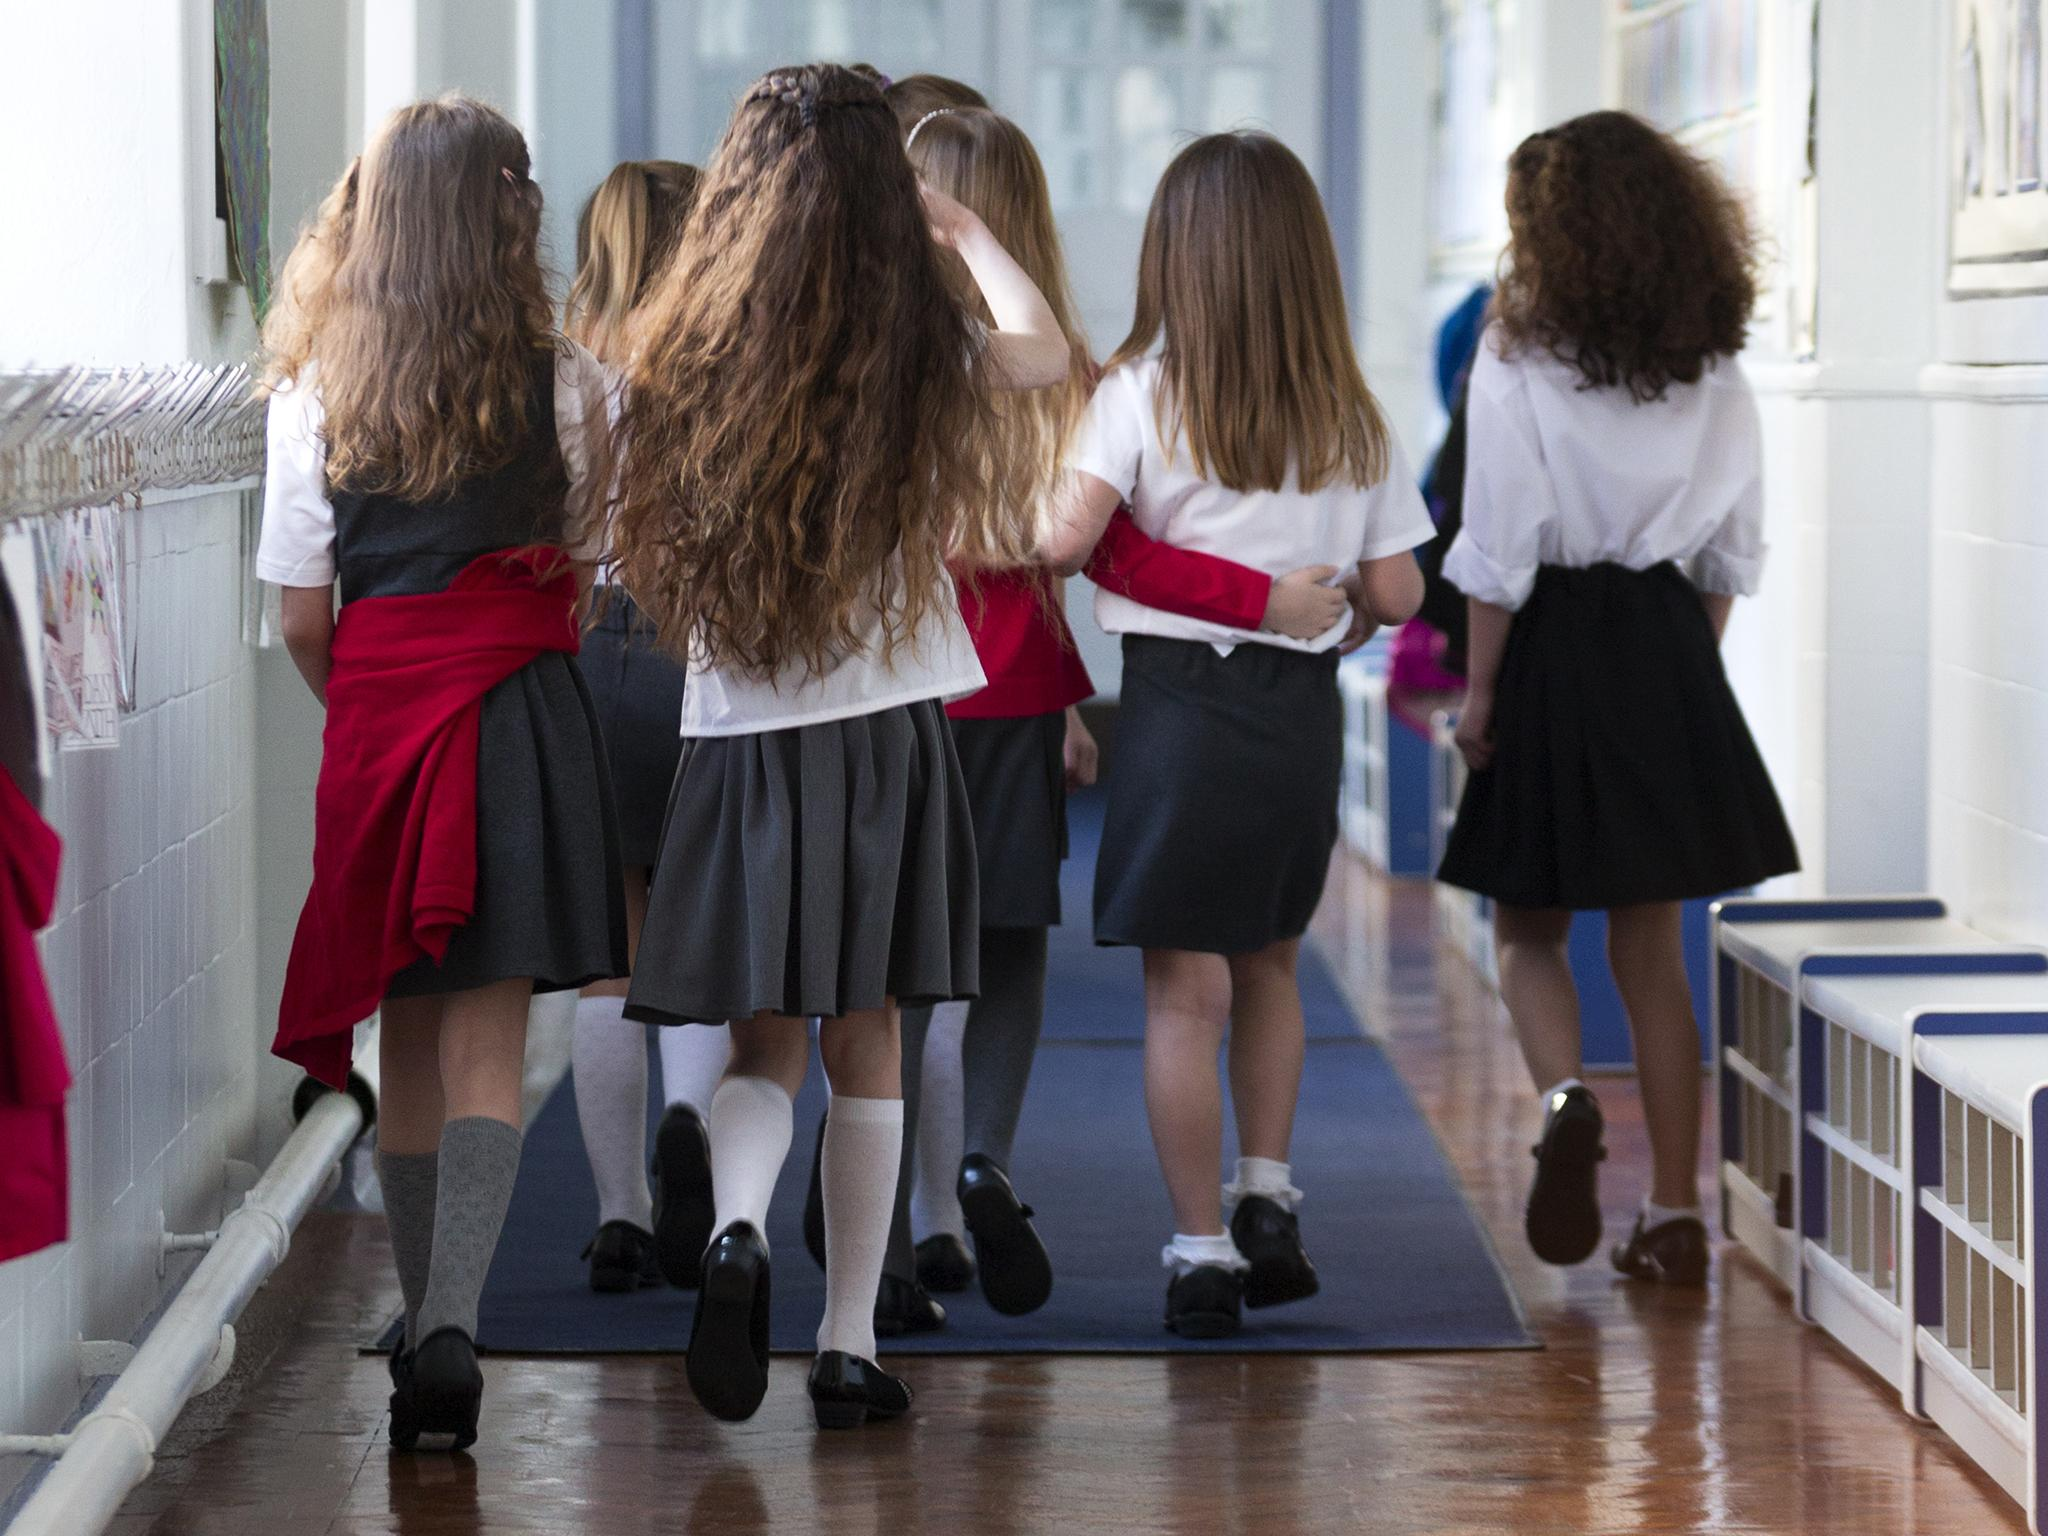 The push for gender-neutral uniforms is great – but it has nothing to do with being trans